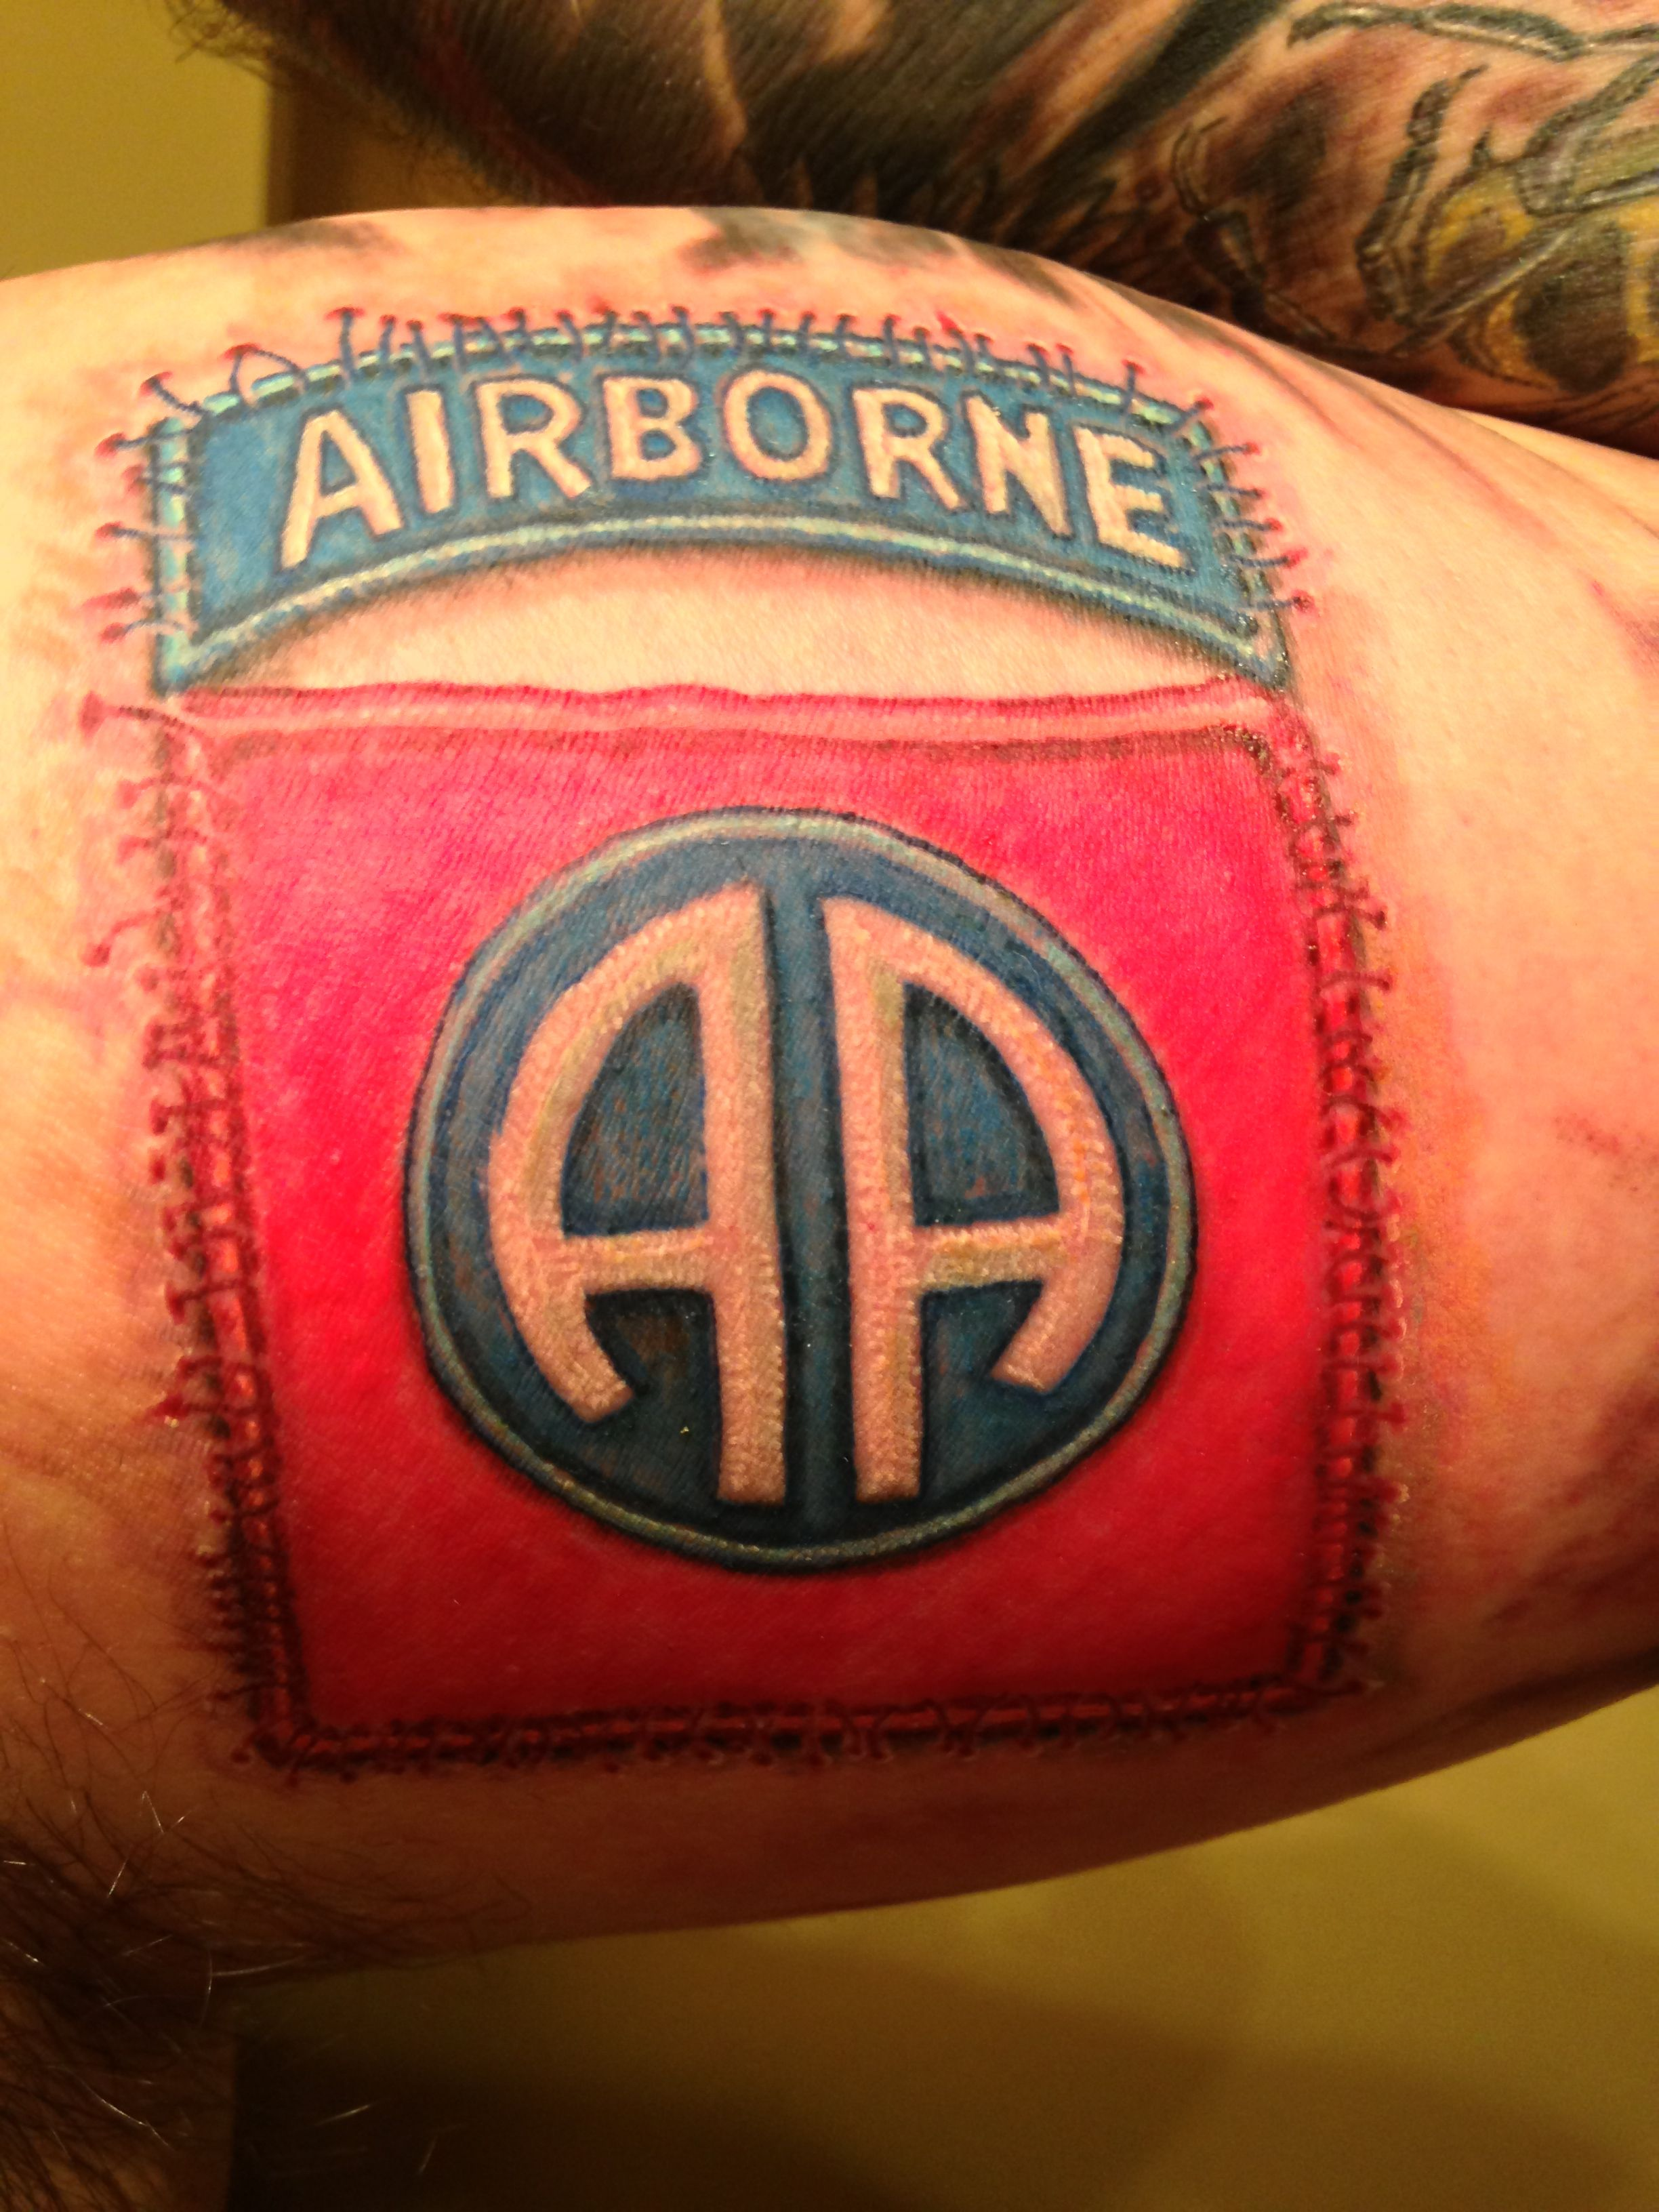 82nd airborne tattoo designs pictures to pin on pinterest tattooskid. Black Bedroom Furniture Sets. Home Design Ideas